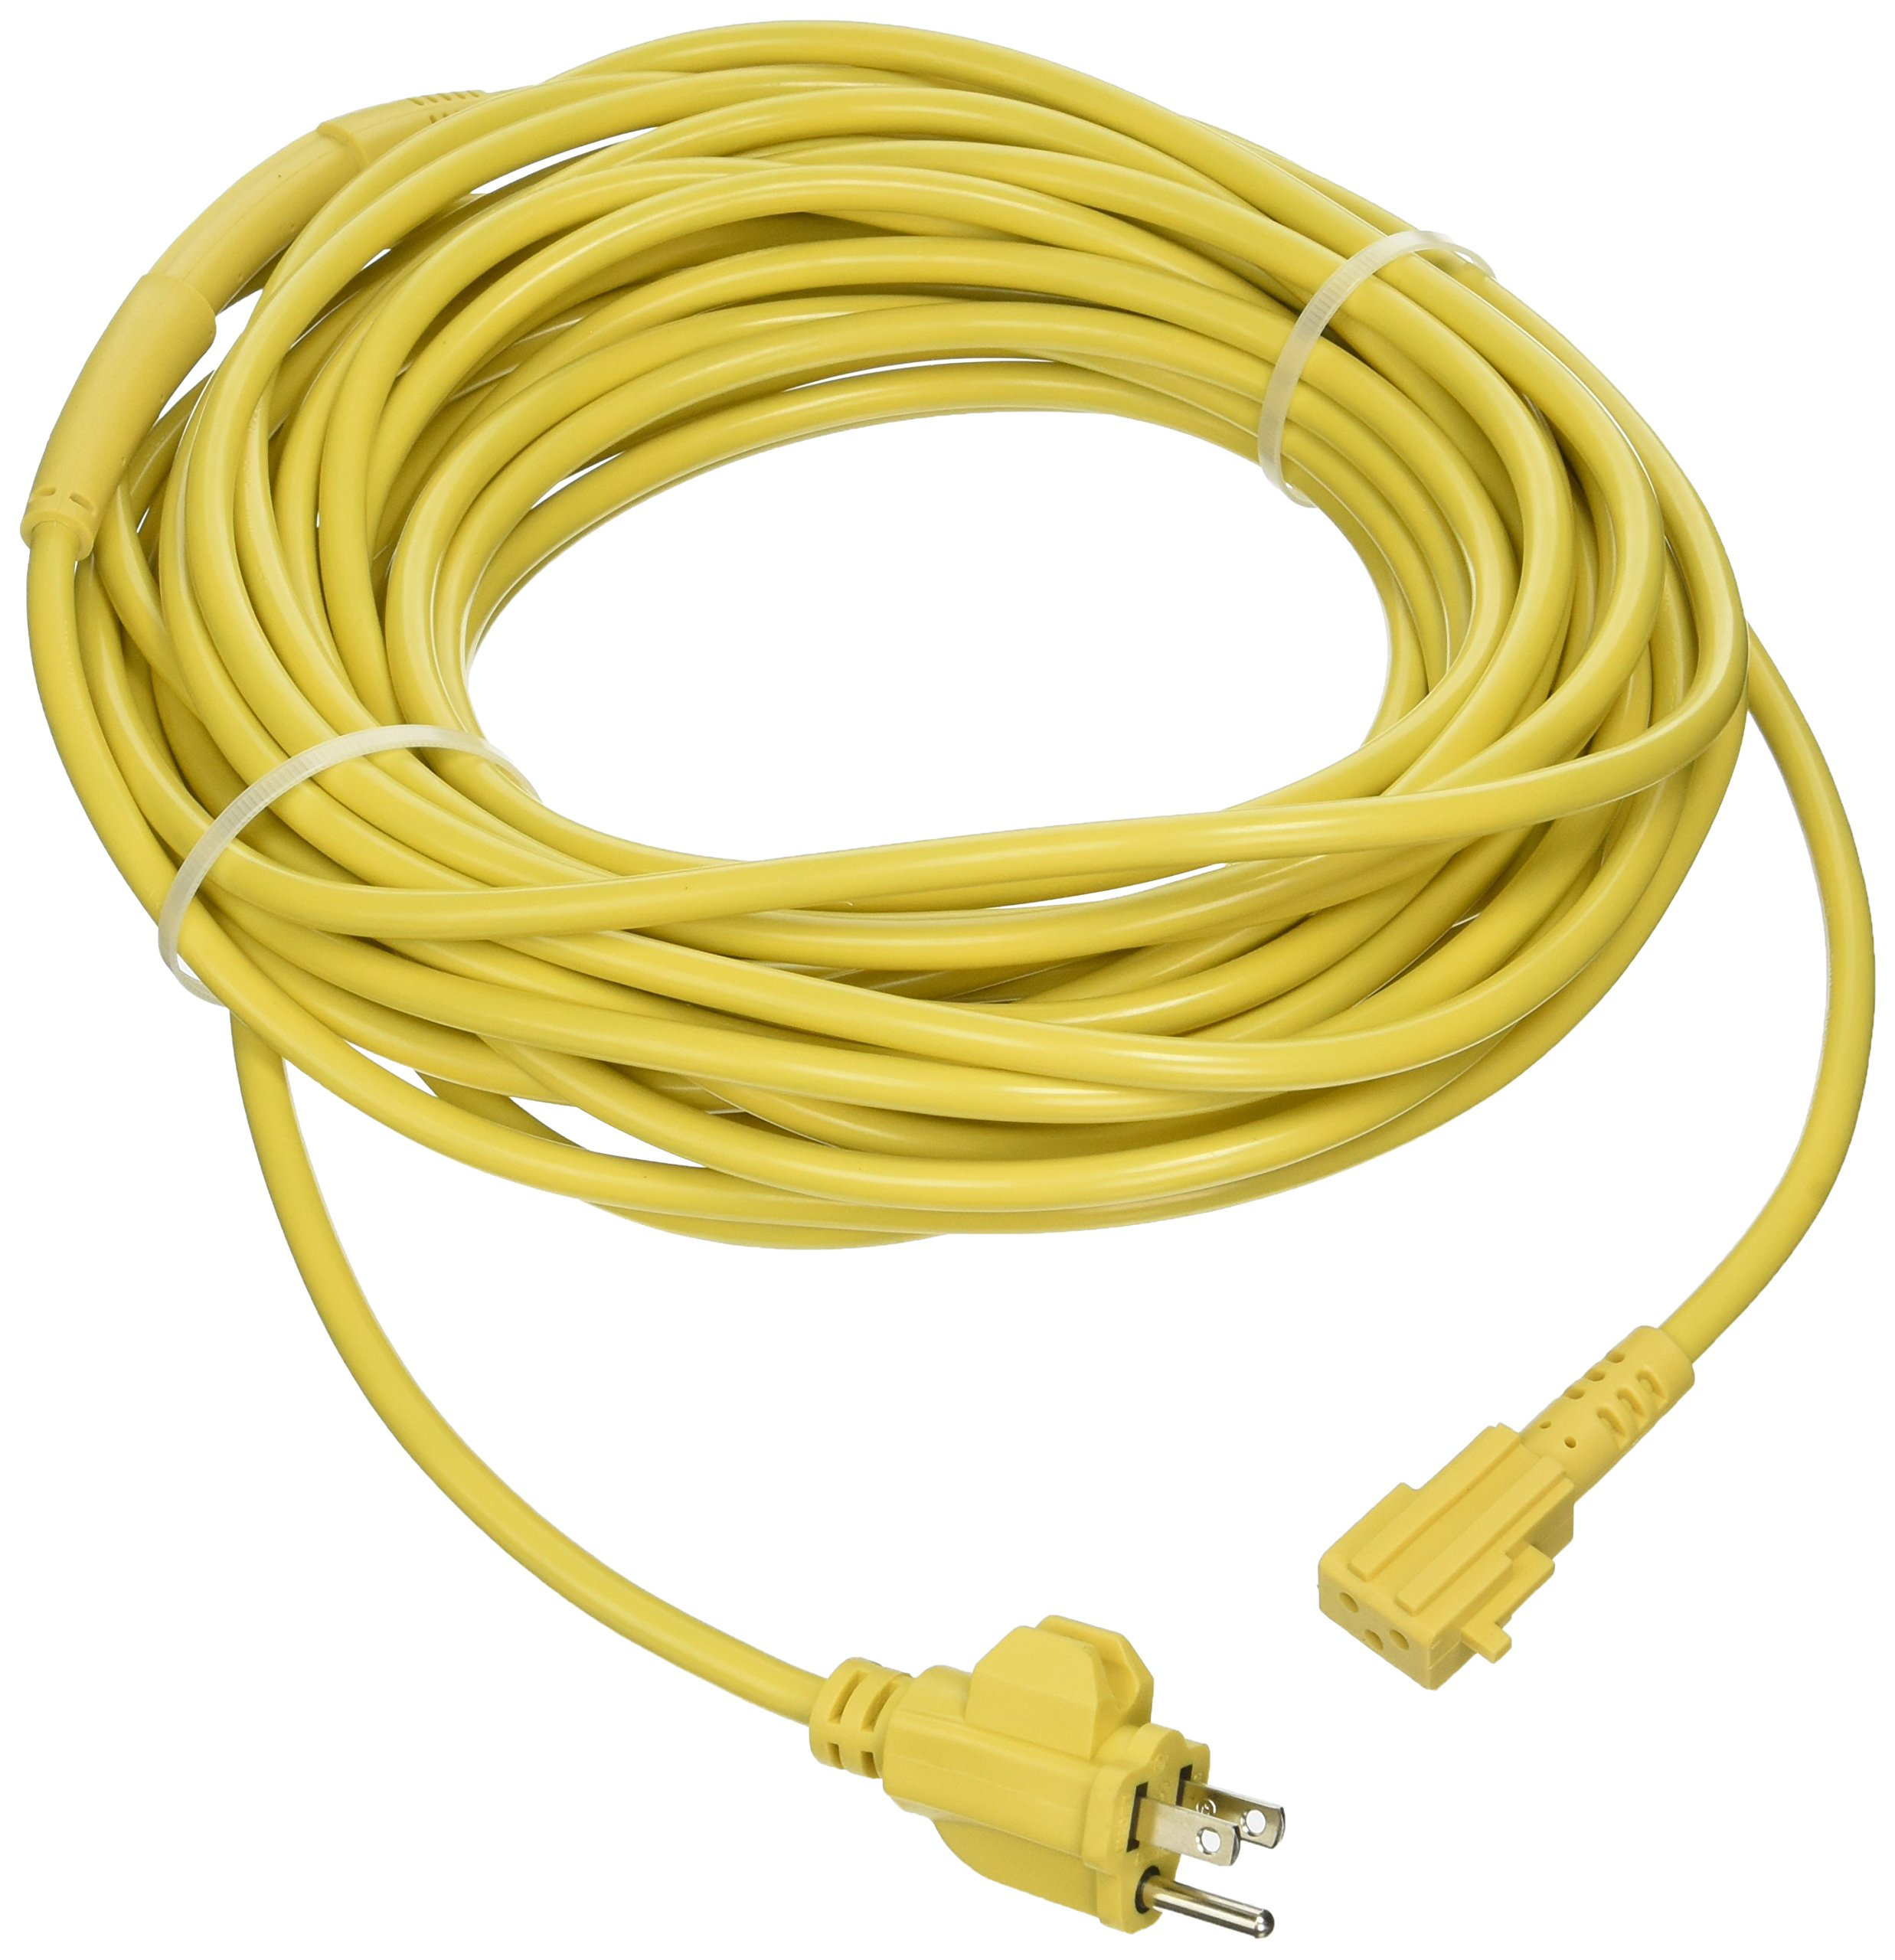 ProTeam Power Cord W/Strain Relief 50Ft Yellow by ProTeam